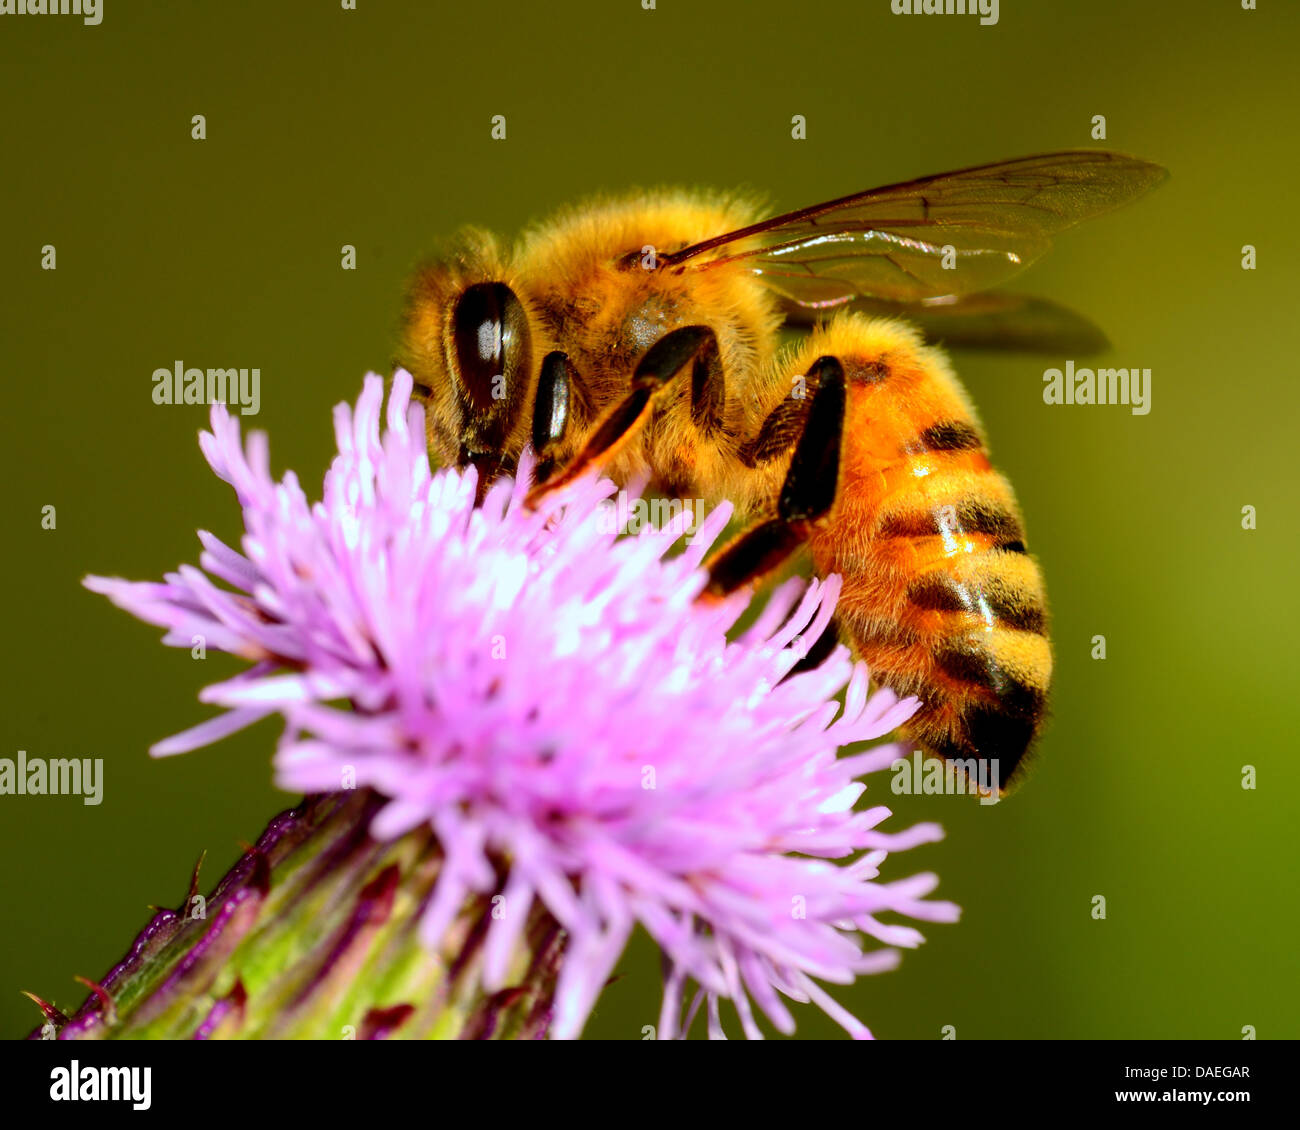 Honey Bee collecting pollen from a flower. - Stock Image